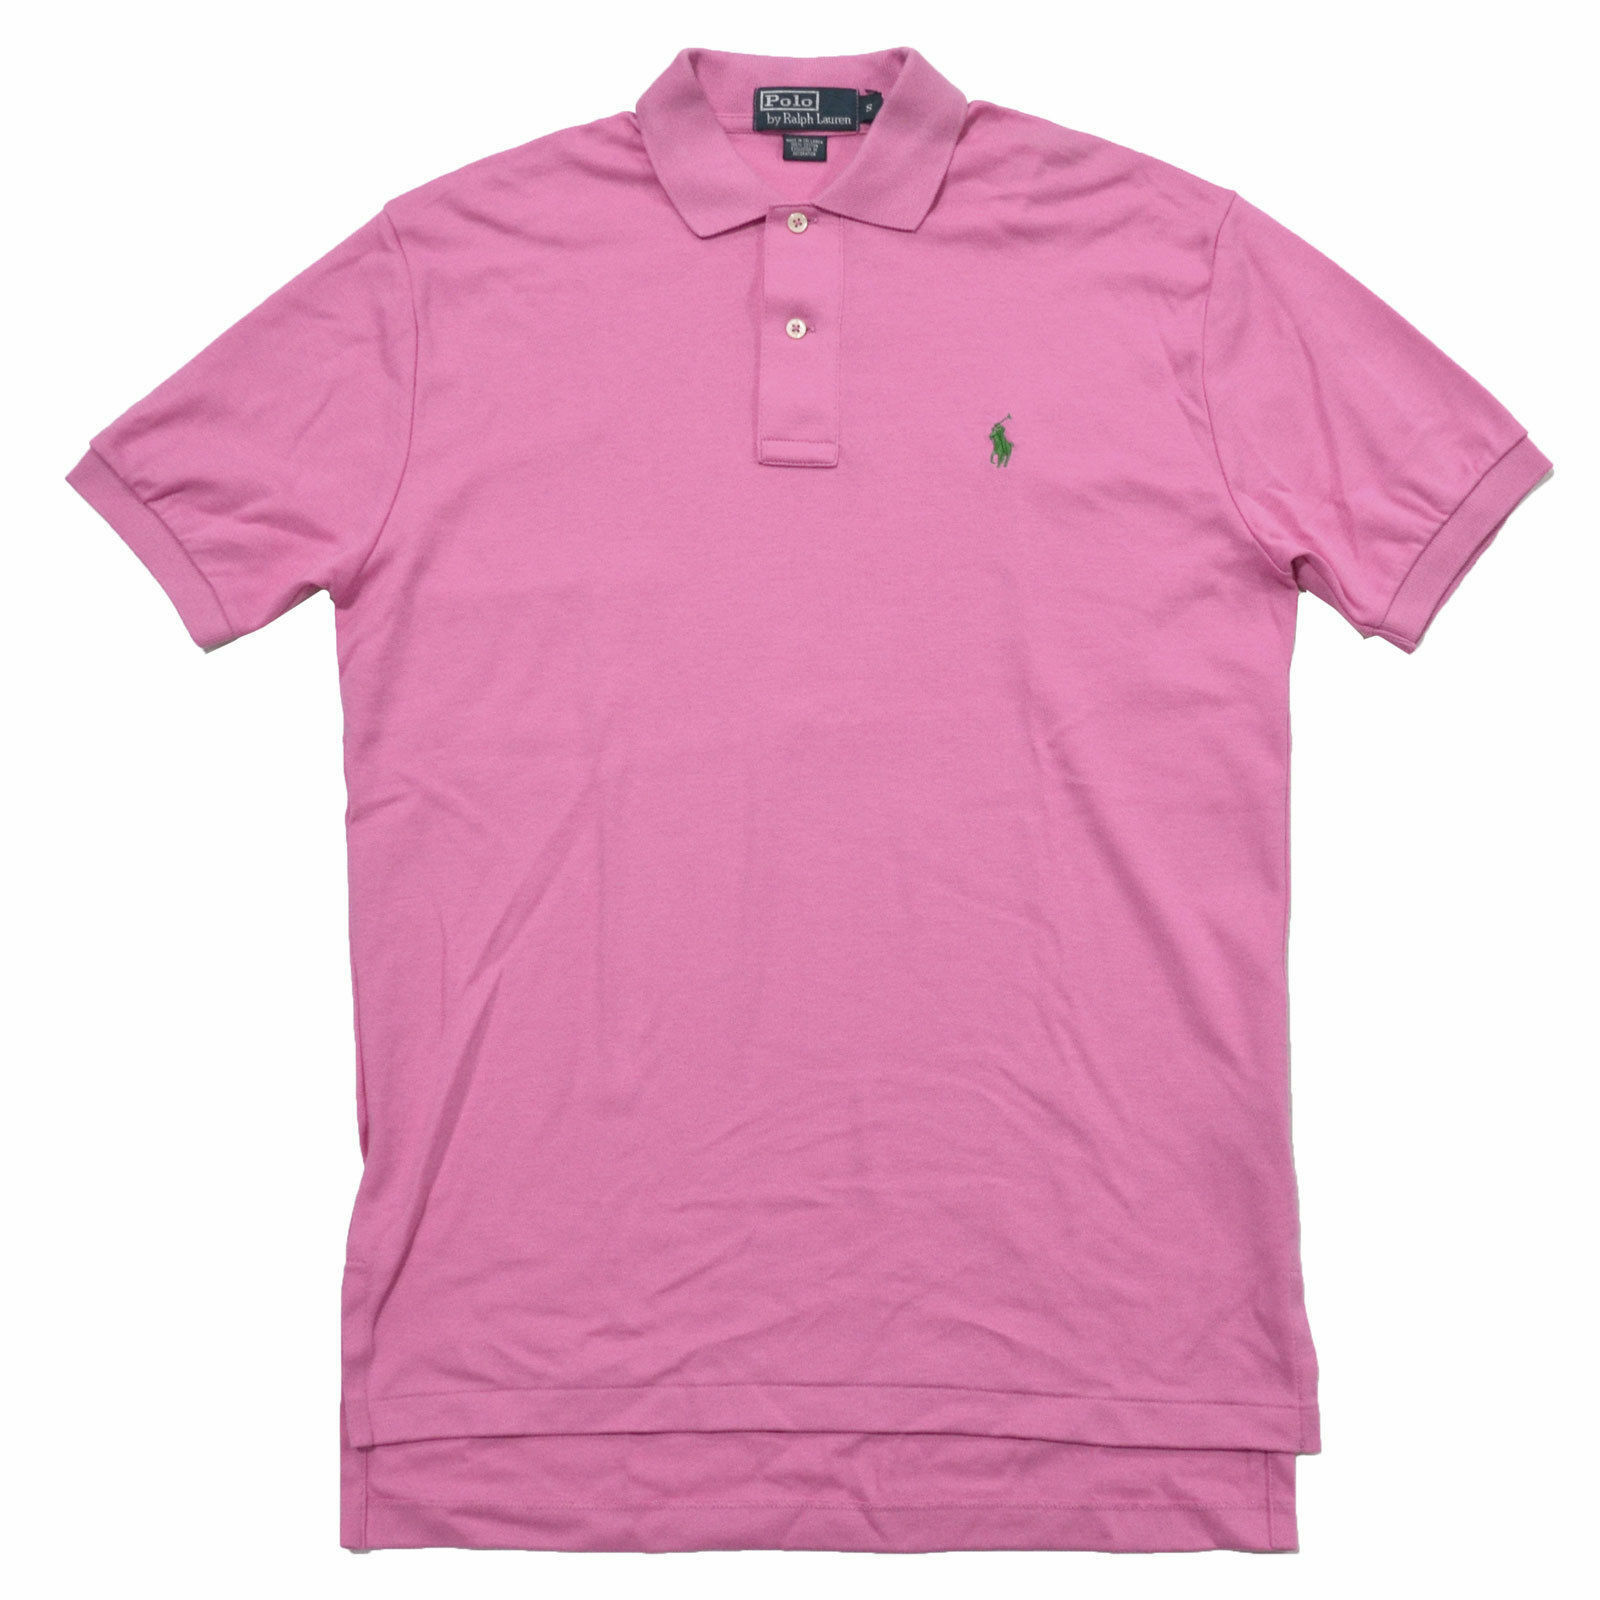 97deea04982c RALPH LAUREN POLO THE MESH S S CLASSIC FIT SHIRT PINK X-LARGE XL NEW ...